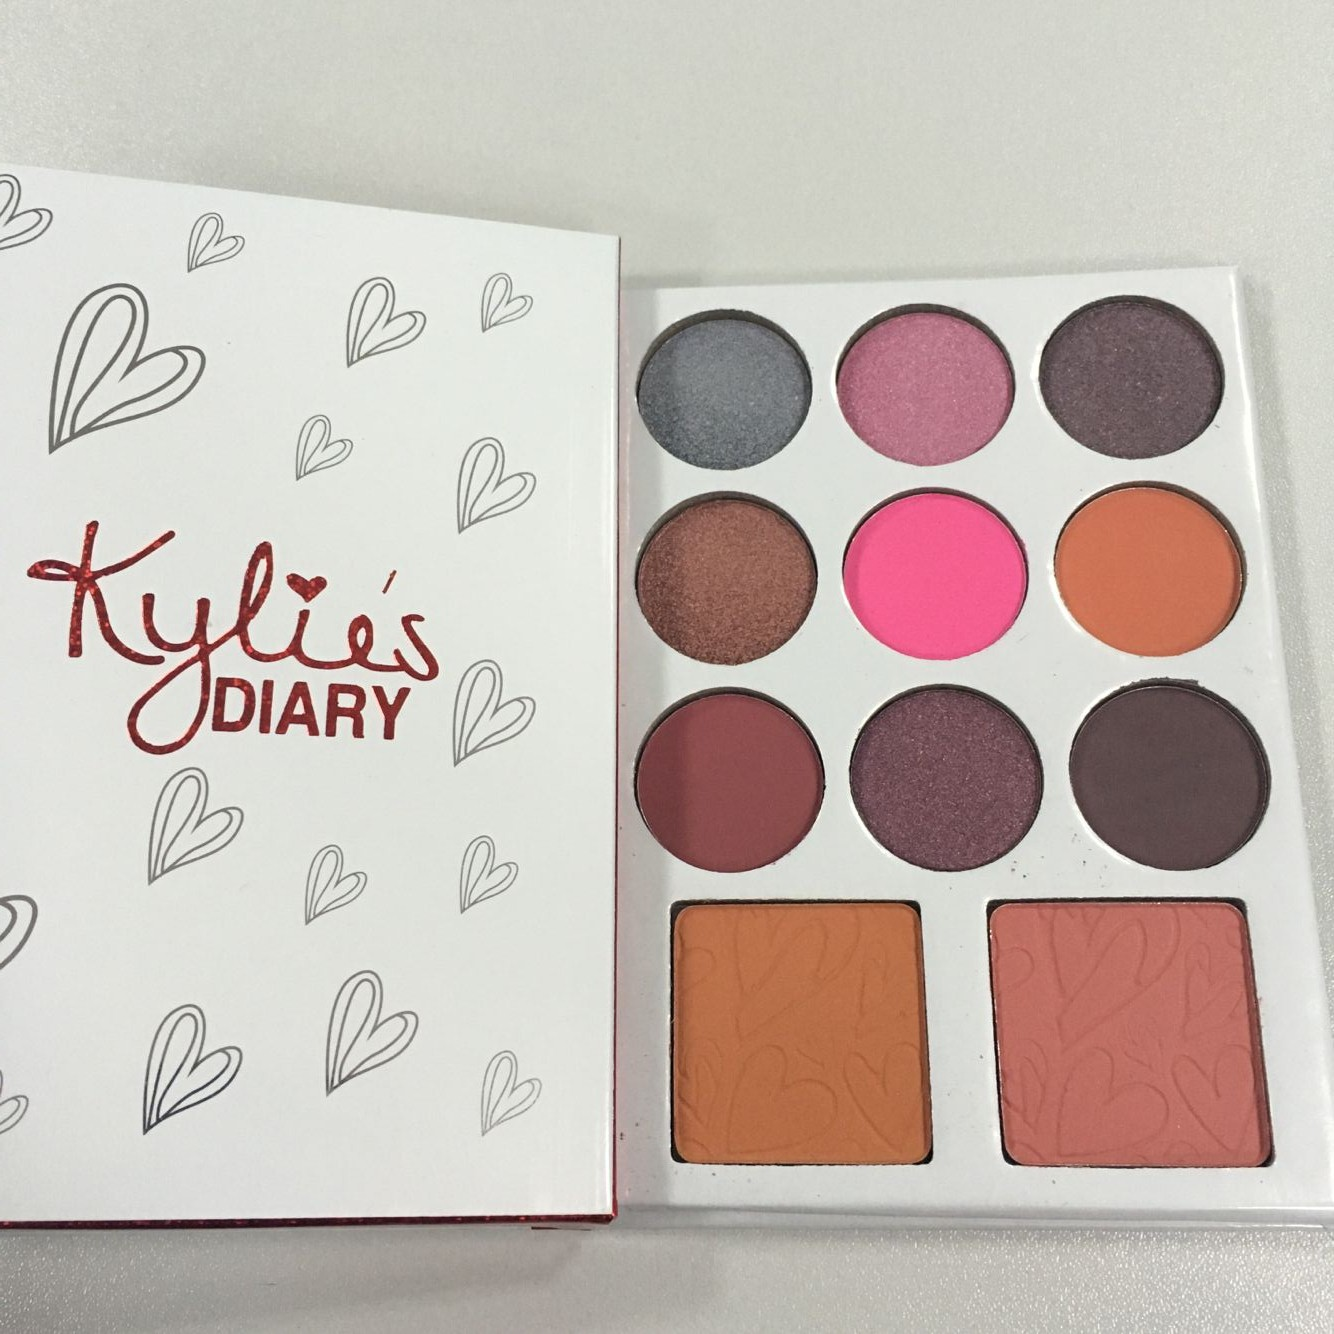 2017 Newest Kylie Valentine's Diary Kyshadow Blush 11 Colors Eye Shadow Palette